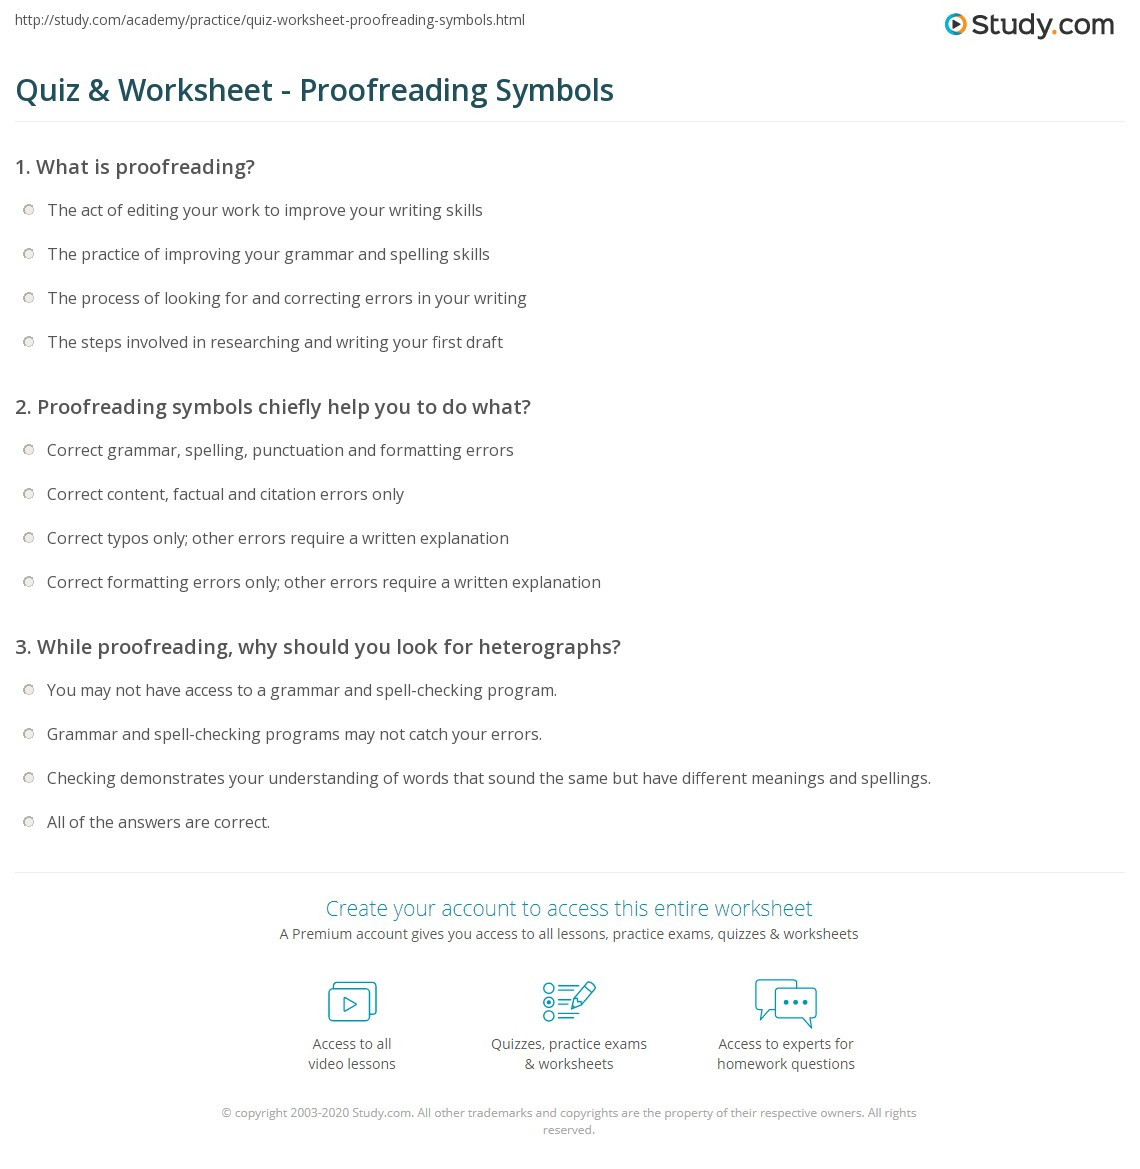 Proofreading Worksheets High School Quiz & Worksheet Proofreading Symbols